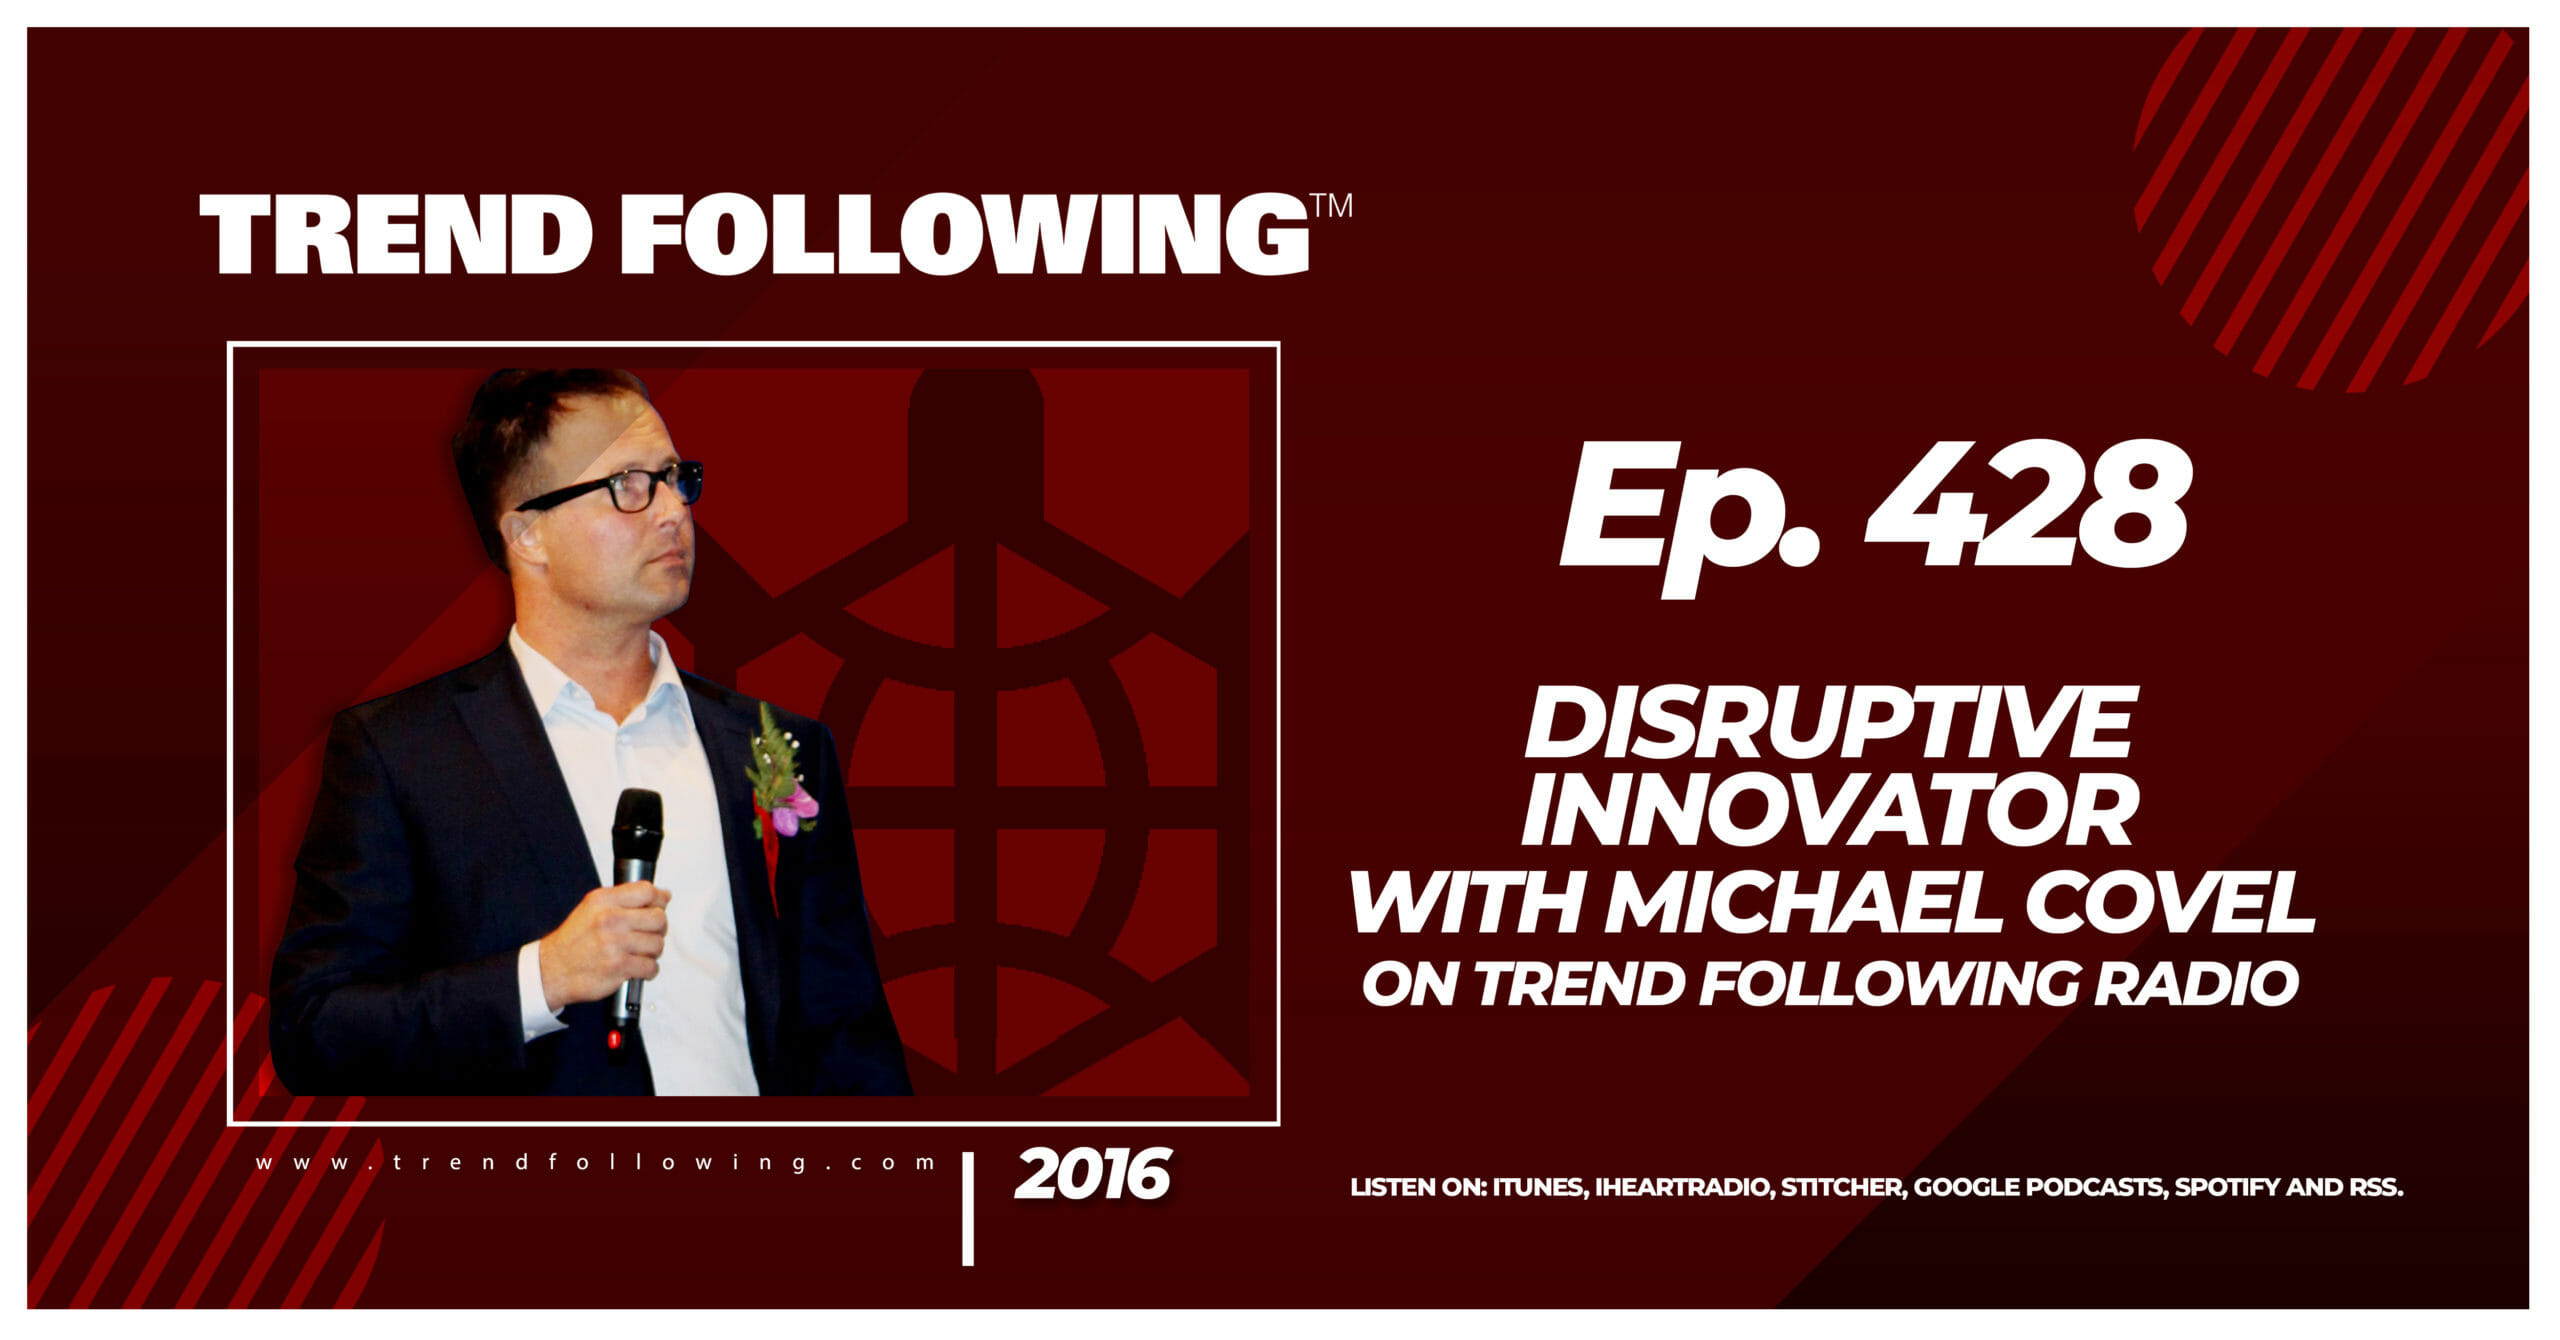 Disruptive Innovator with Michael Covel on Trend Following Radio